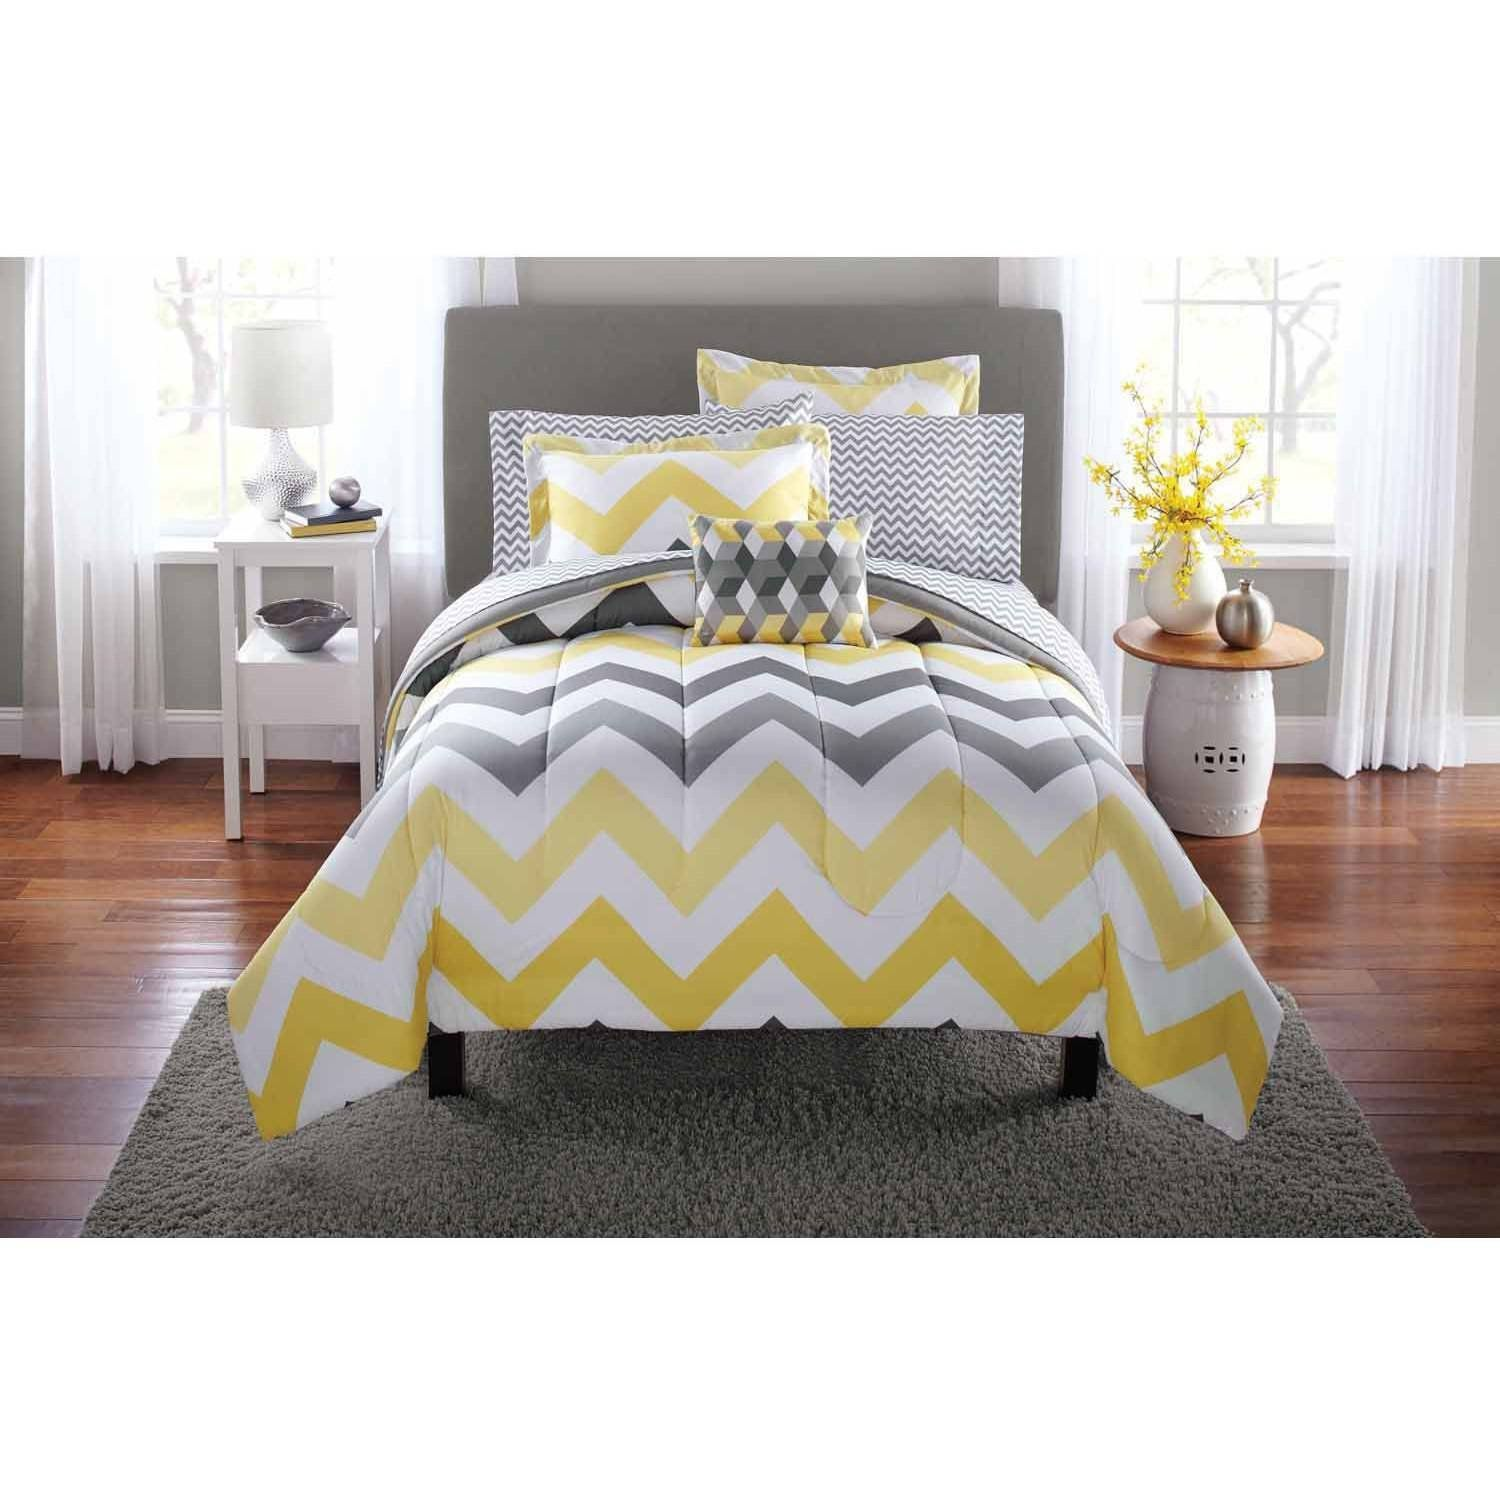 Mainstays Yellow Grey Chevron Bed in a Bag Bedding forter Set